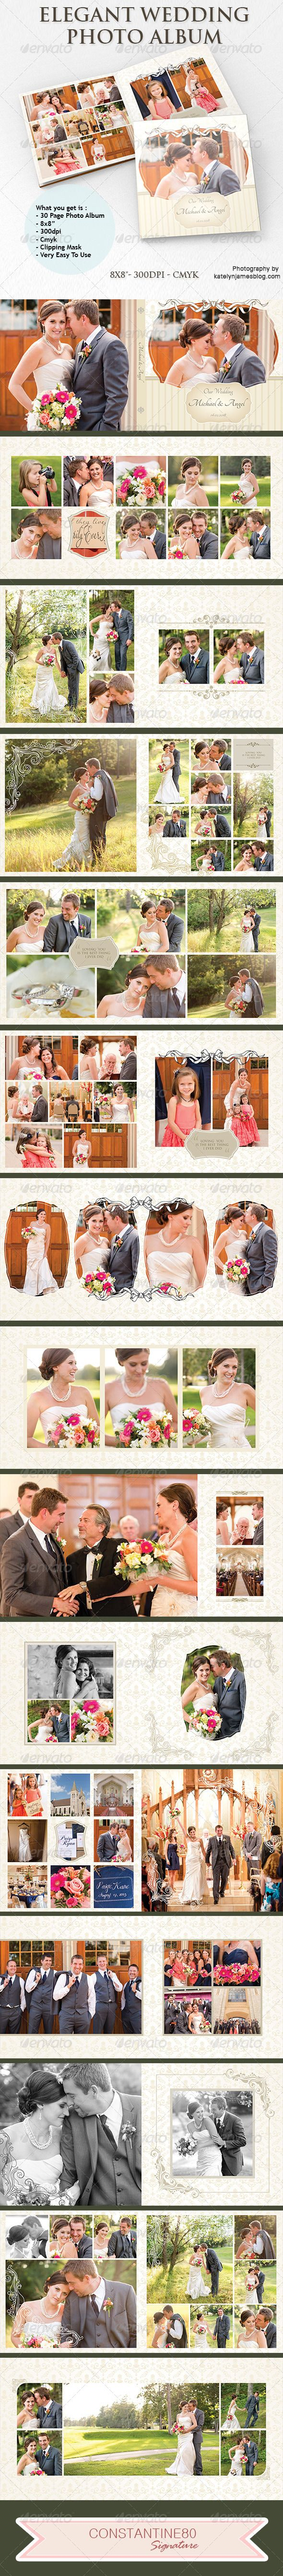 """Elegant Wedding Photo Album  #GraphicRiver         What you get is :   Photo Album 8""""x8"""" Color mode: CMYK Resolution: 300 DPI Total Dimensions: 4838×2438px   Total is 15 items    —-—-—-—-- Fonts used: Trajan Pro  .myfonts /fonts/adobe/trajan/ Tangerine  .dafont /search.php?q=tangerine      How To Use:put your Picture above layer """">>>PHOTO Created: 1September13 GraphicsFilesIncluded: PhotoshopPSD Layered: Yes MinimumAdobeCSVersion: CS4 PrintDimensions: 8x8 Tags: 10x10 #12x12 #8x8"""